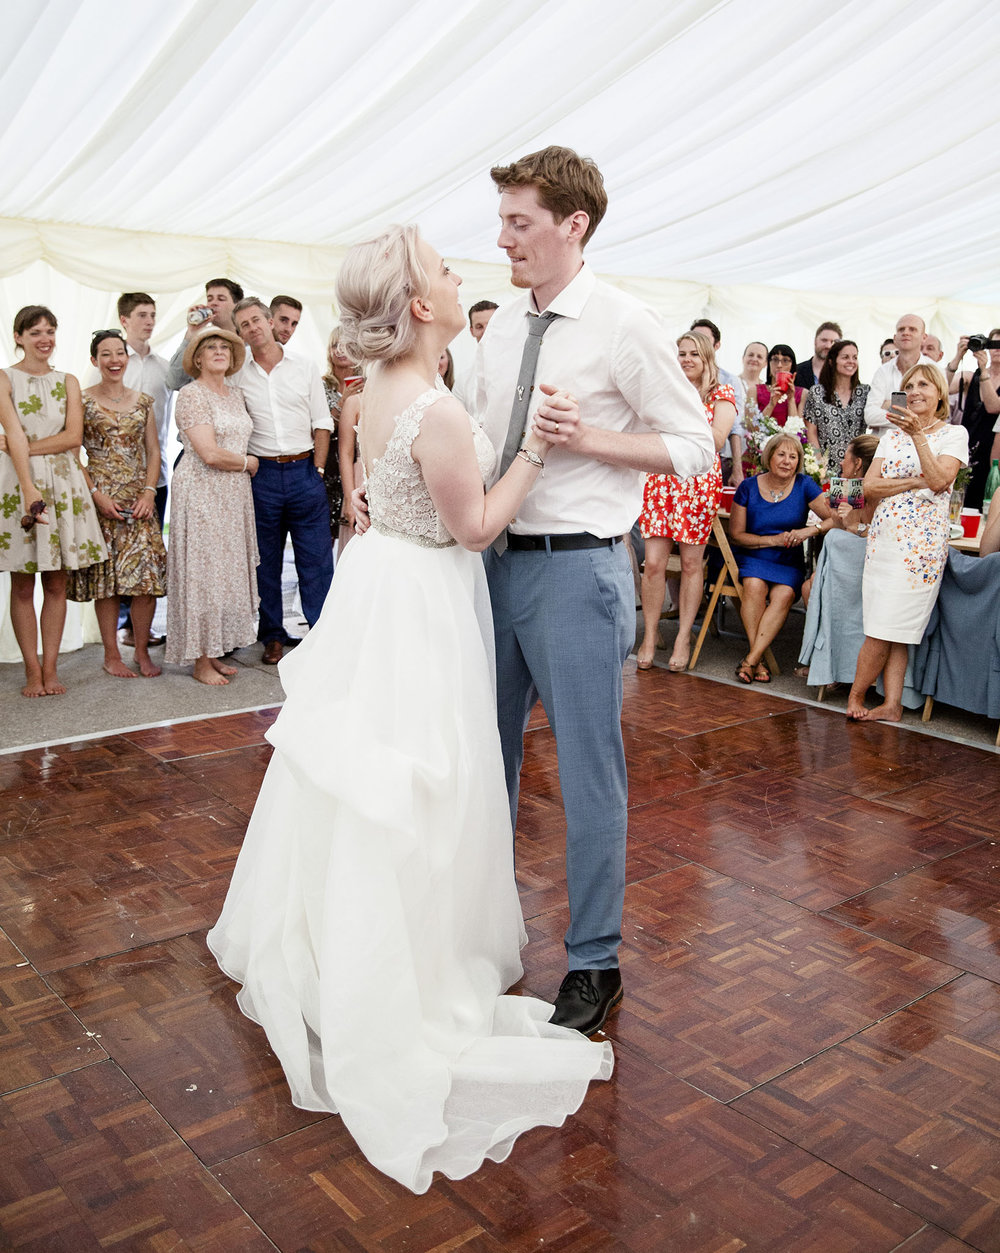 elizabethgphotography_kingslangley_hertfordshire_fineart_wedding_pottersbar_matt_katie_pegg_44.jpg